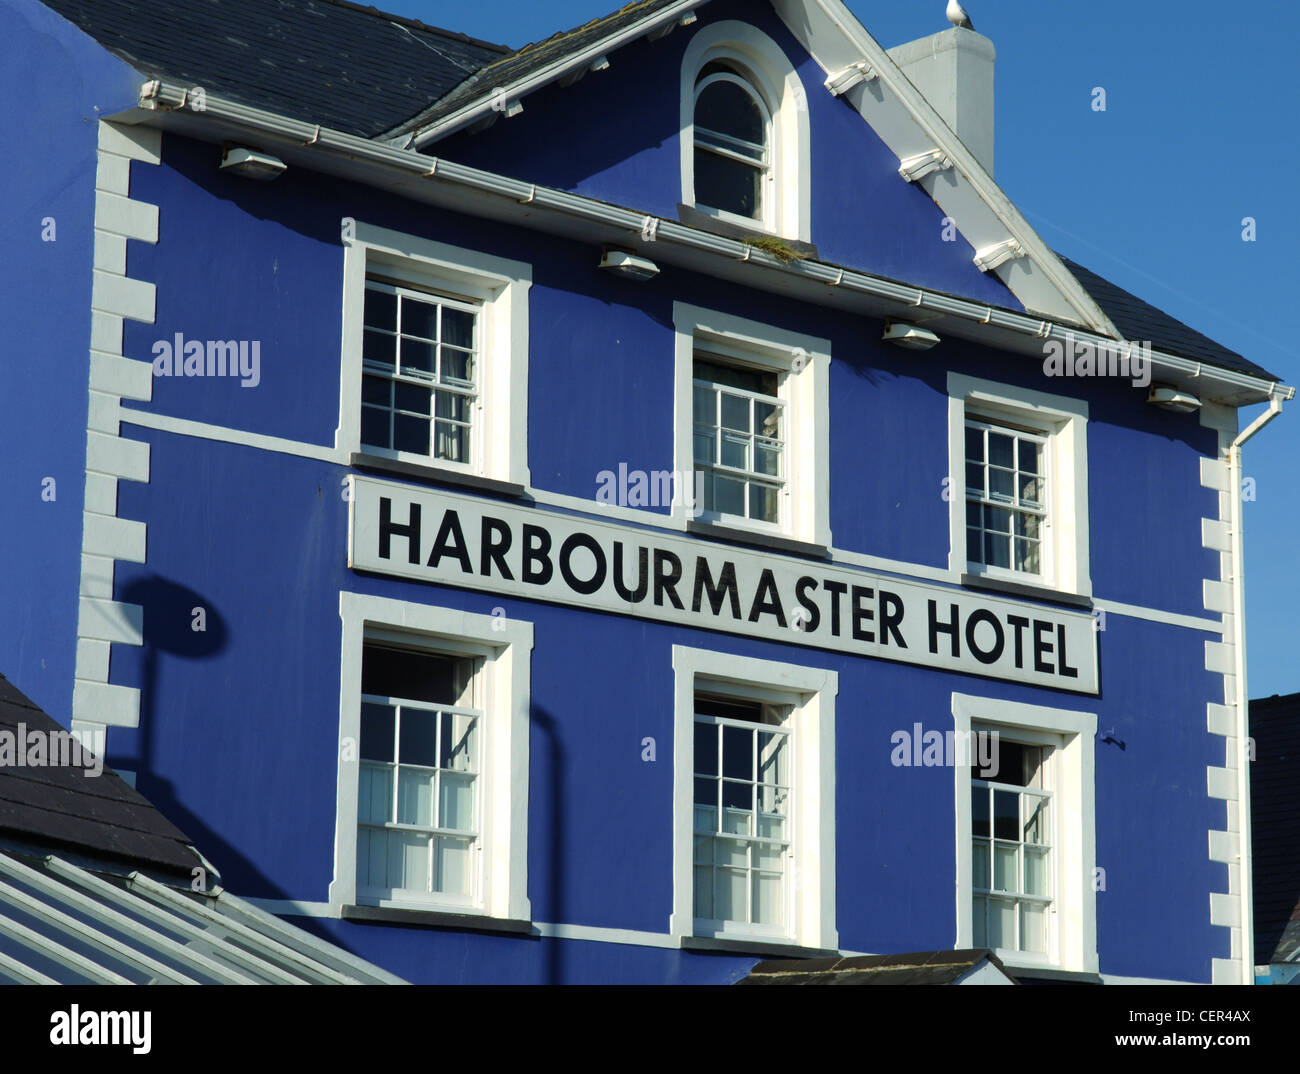 Exterior of the the Harbourmaster Hotel. - Stock Image